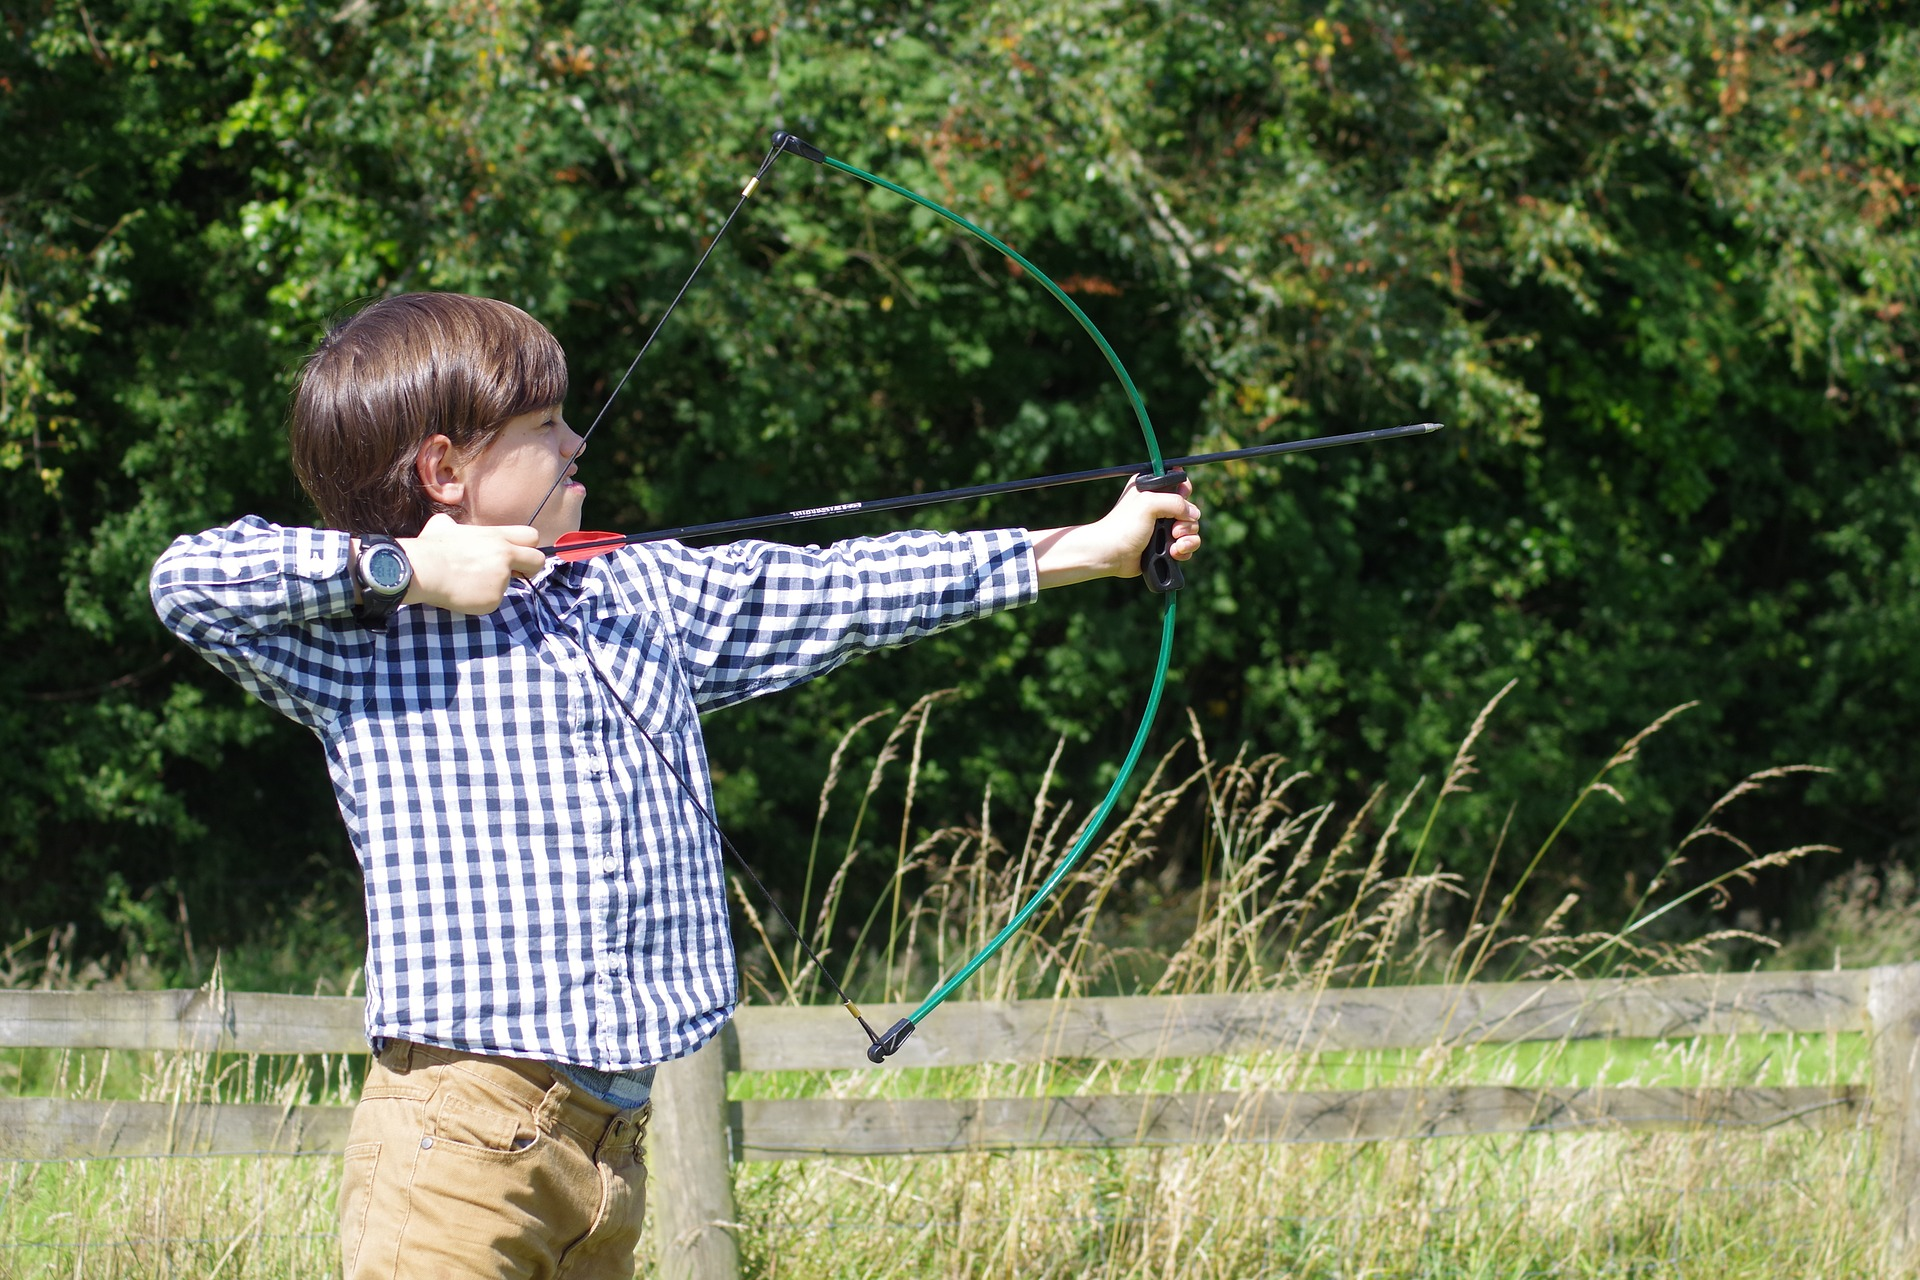 A picture of a child doing archery